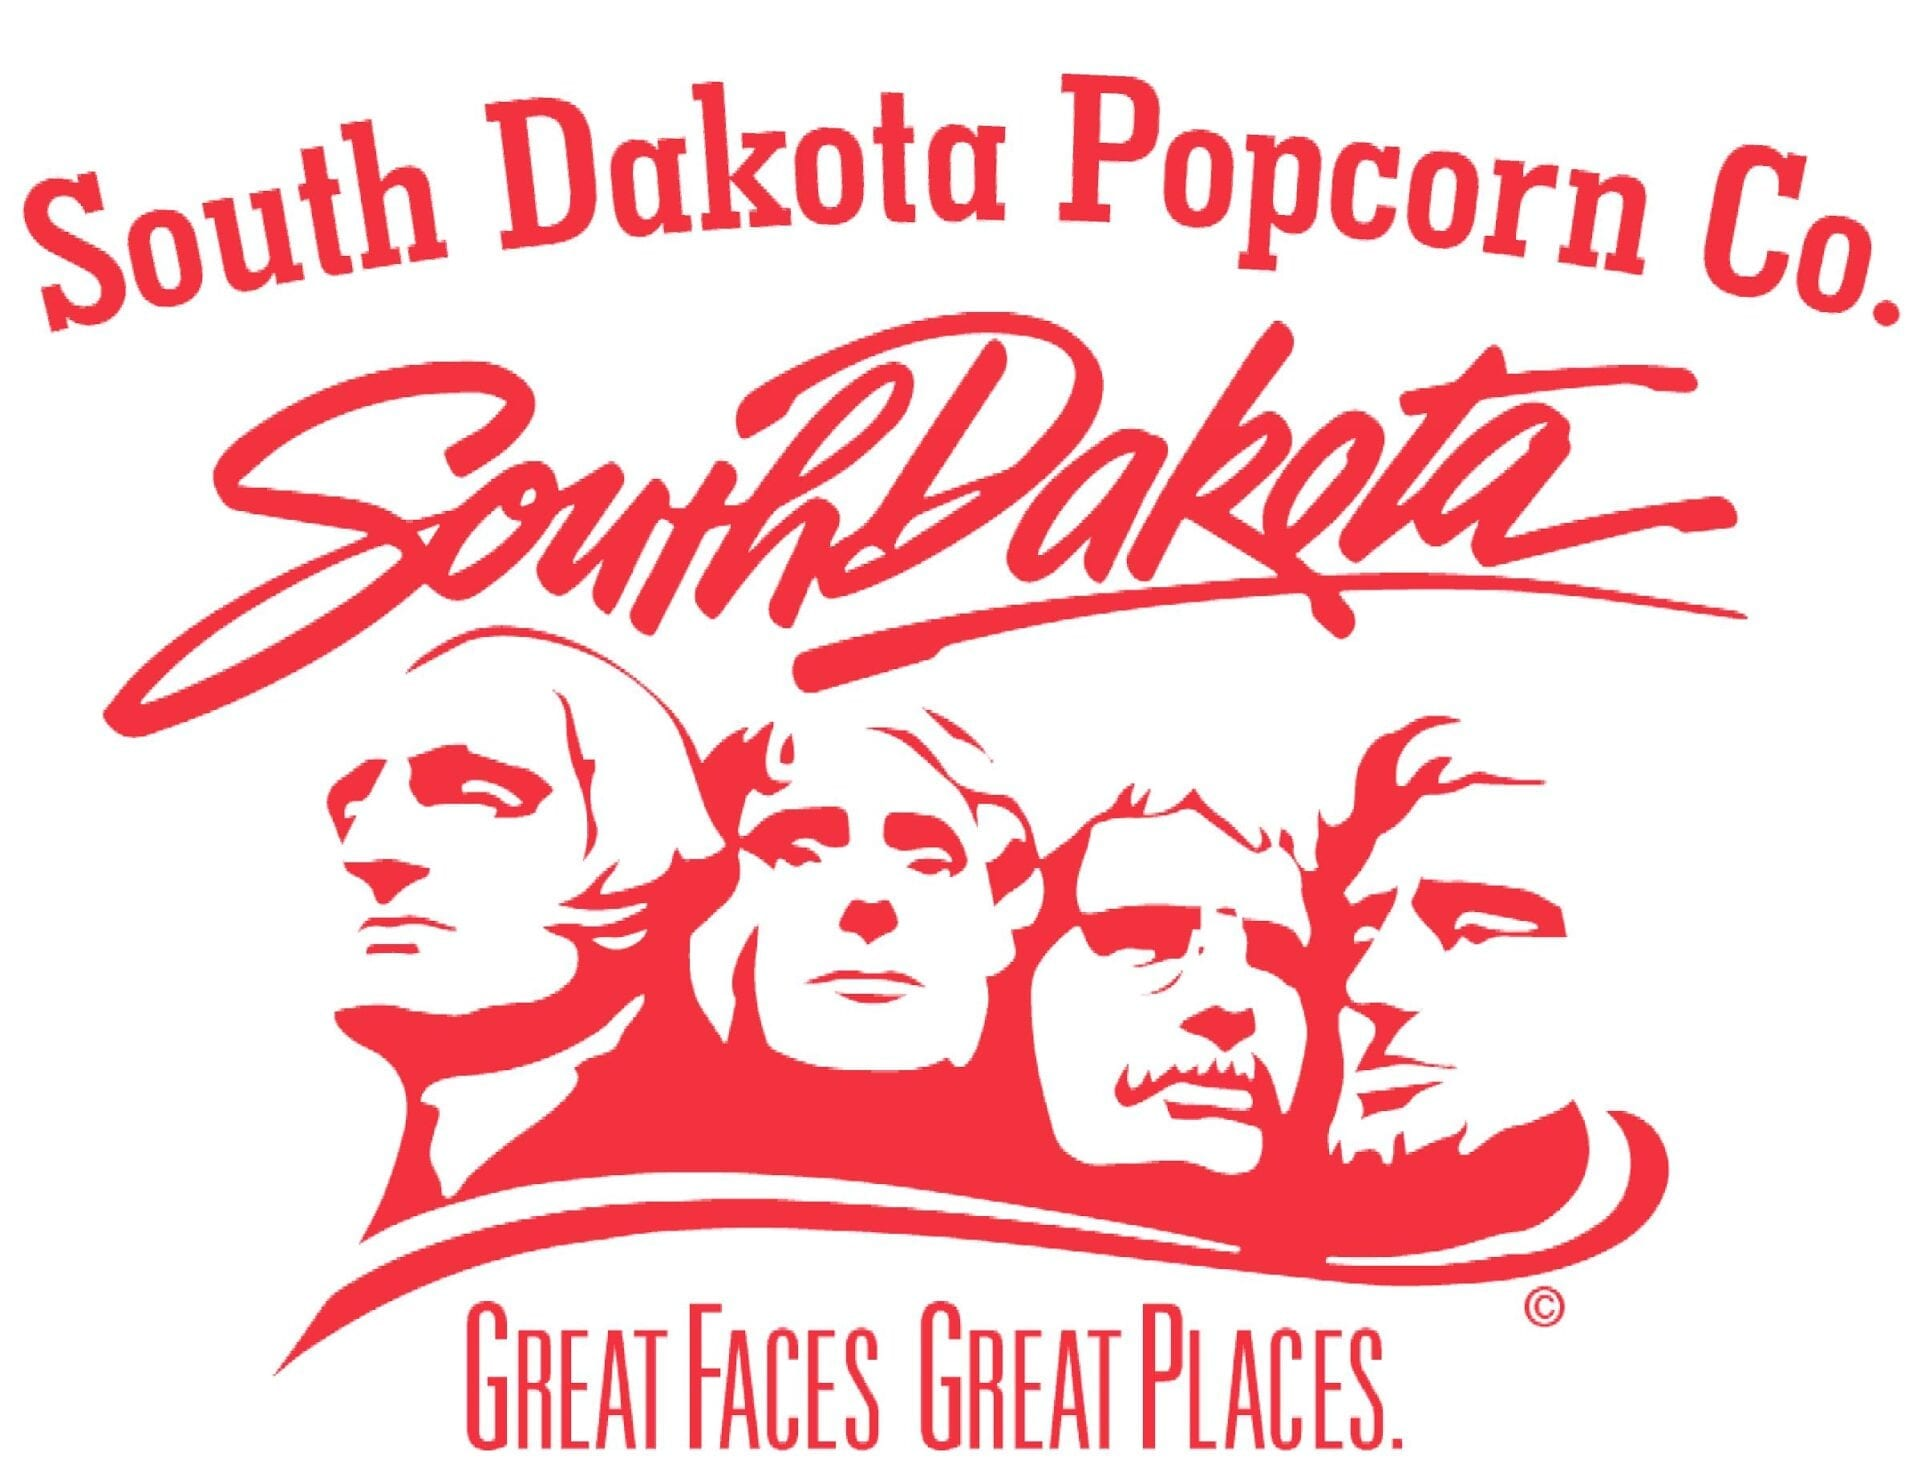 South Dakota Popcorn Company